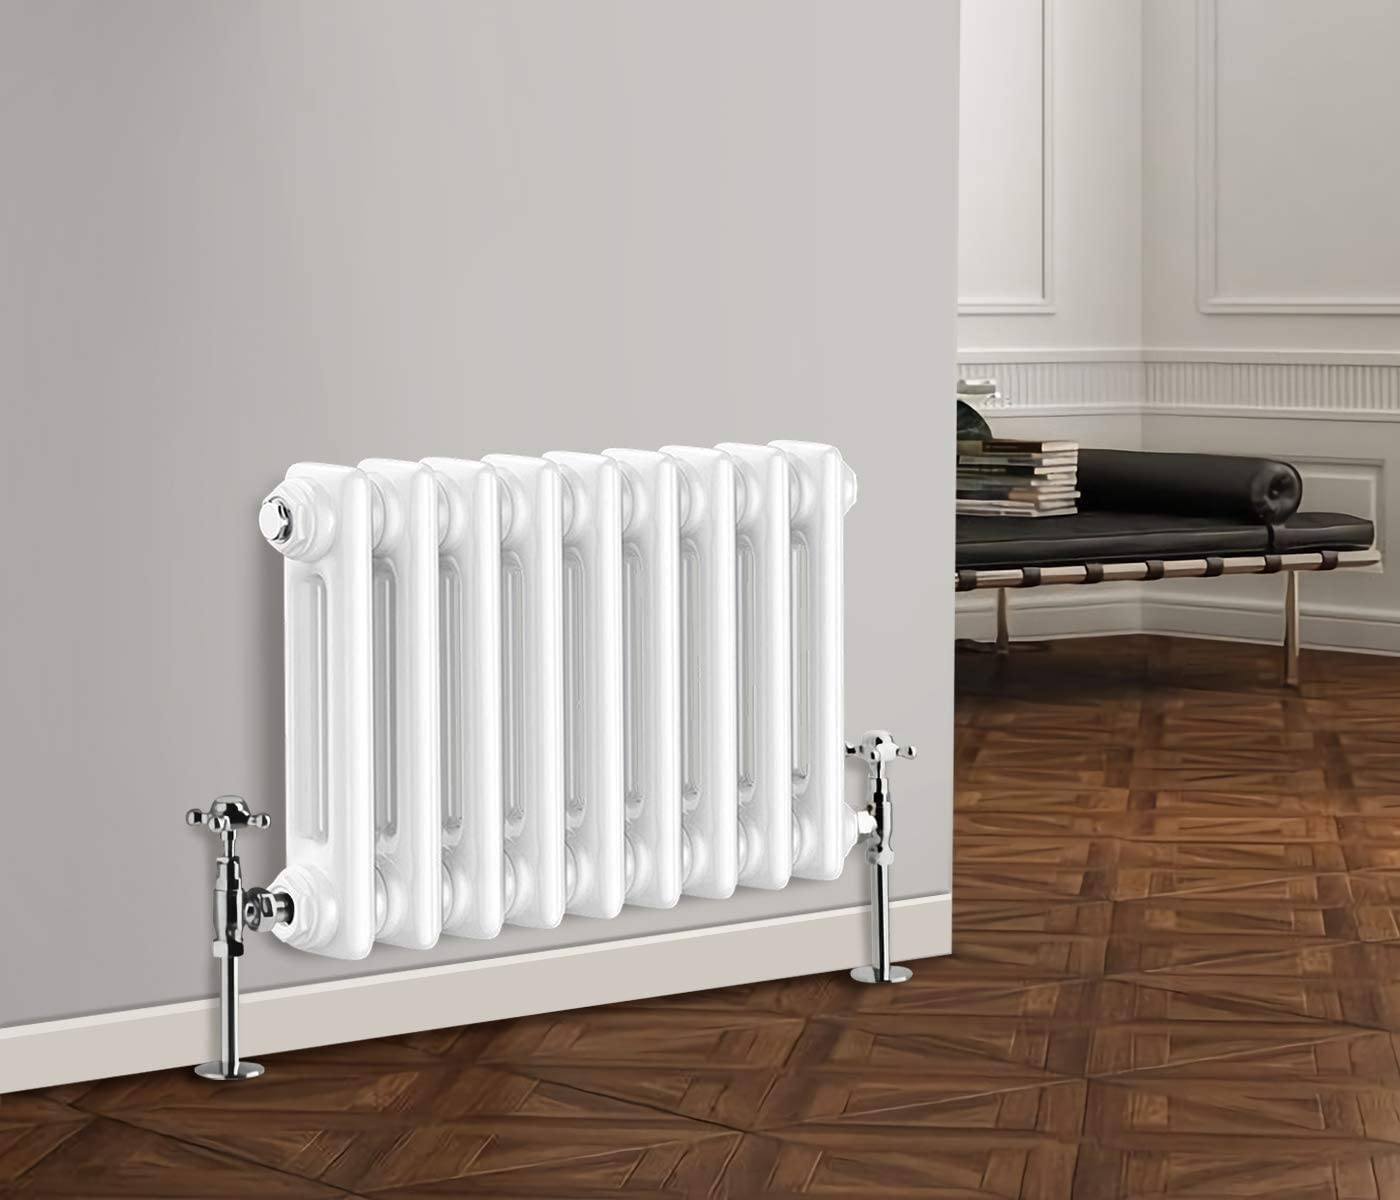 NRG 1800 x 380 mm Traditional White Vertical Cast Iron Radiator Double Panel